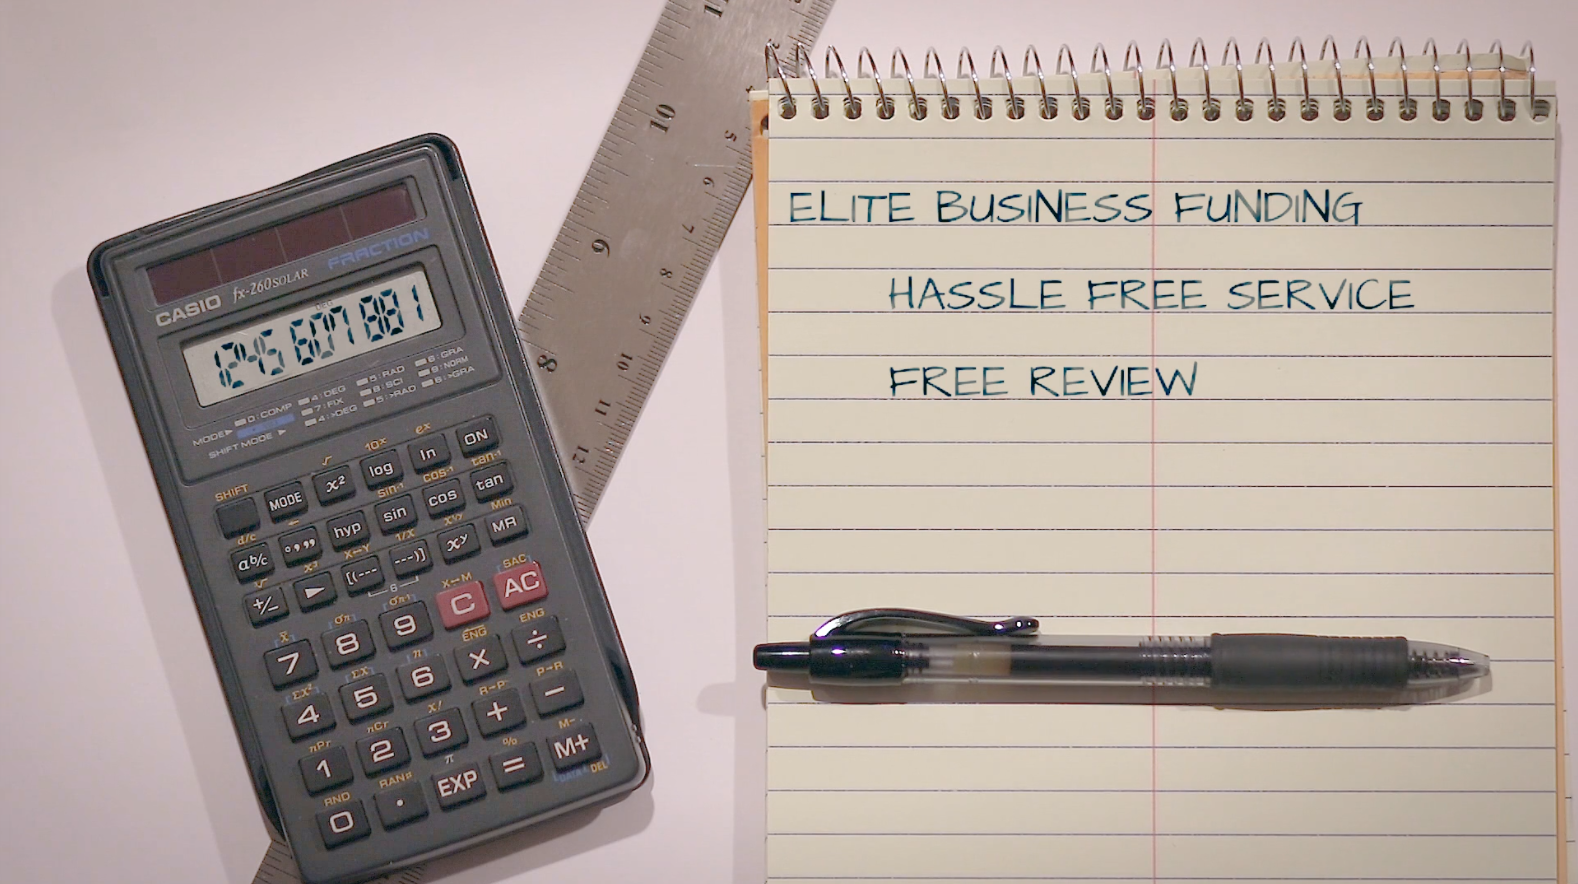 Elite Business Funding's hassle free service